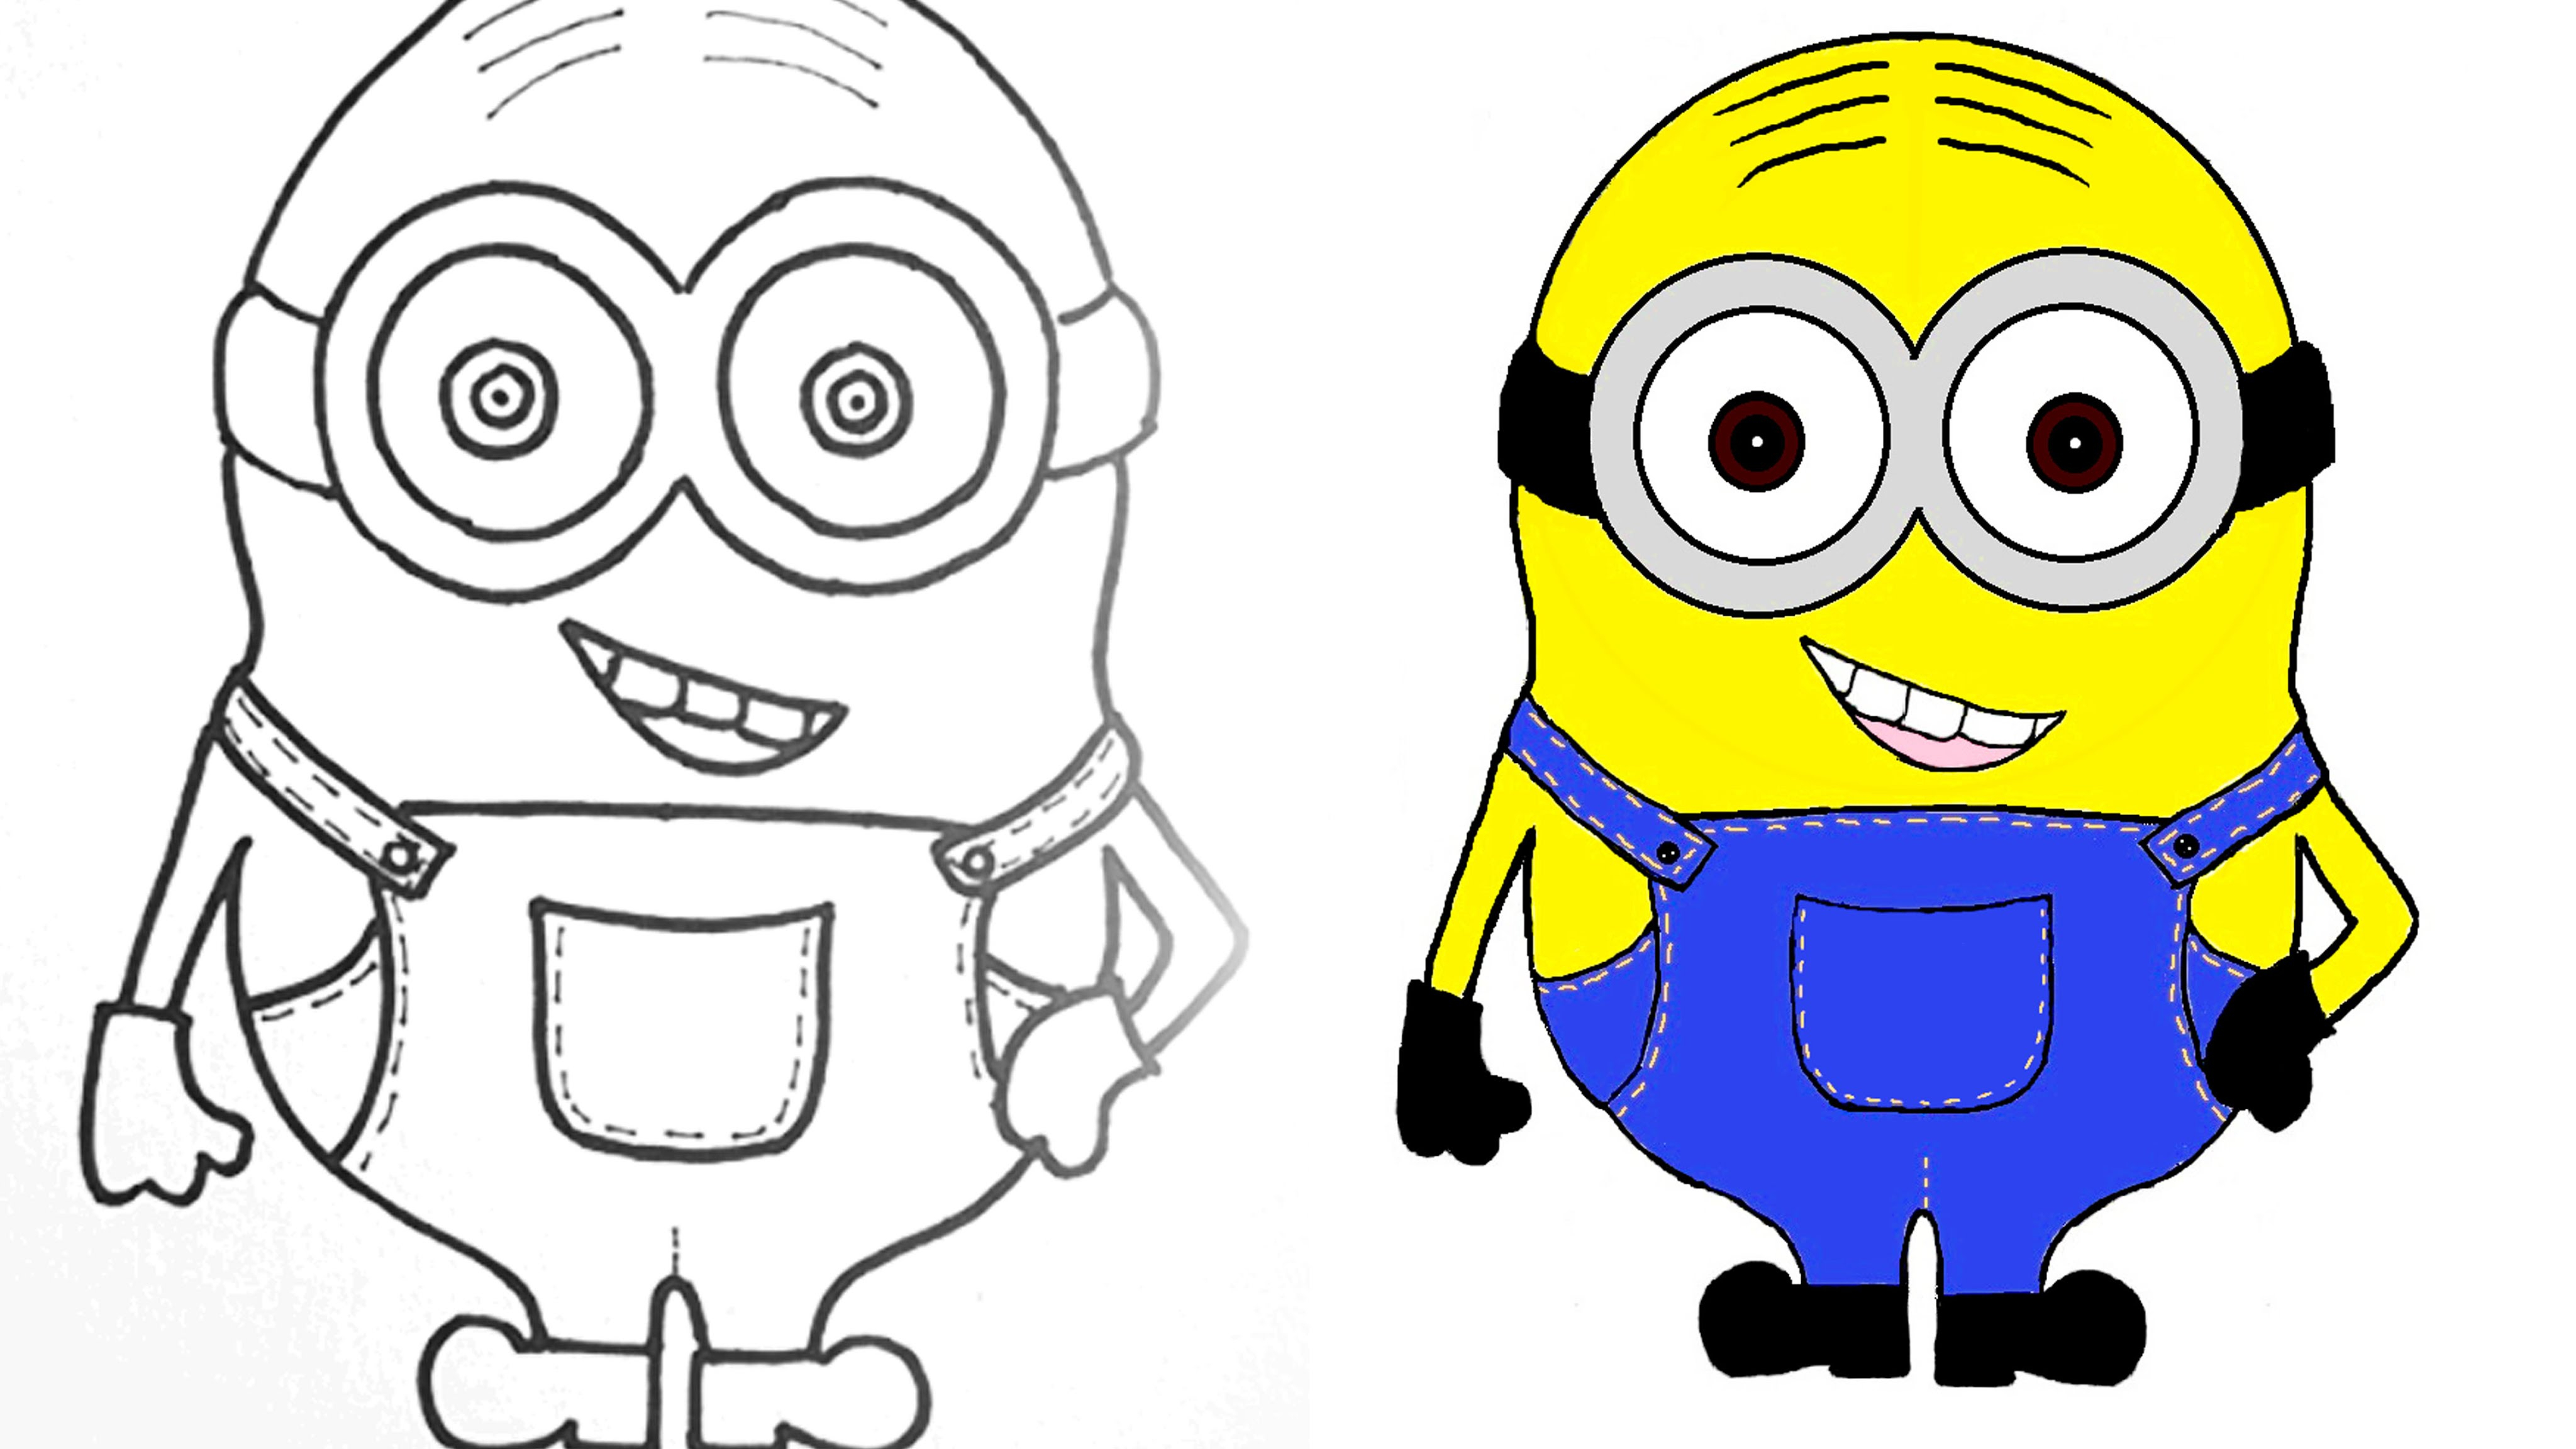 4096x2304 Cartoon Minion Drawing Minion How To Draw And Color A Minion